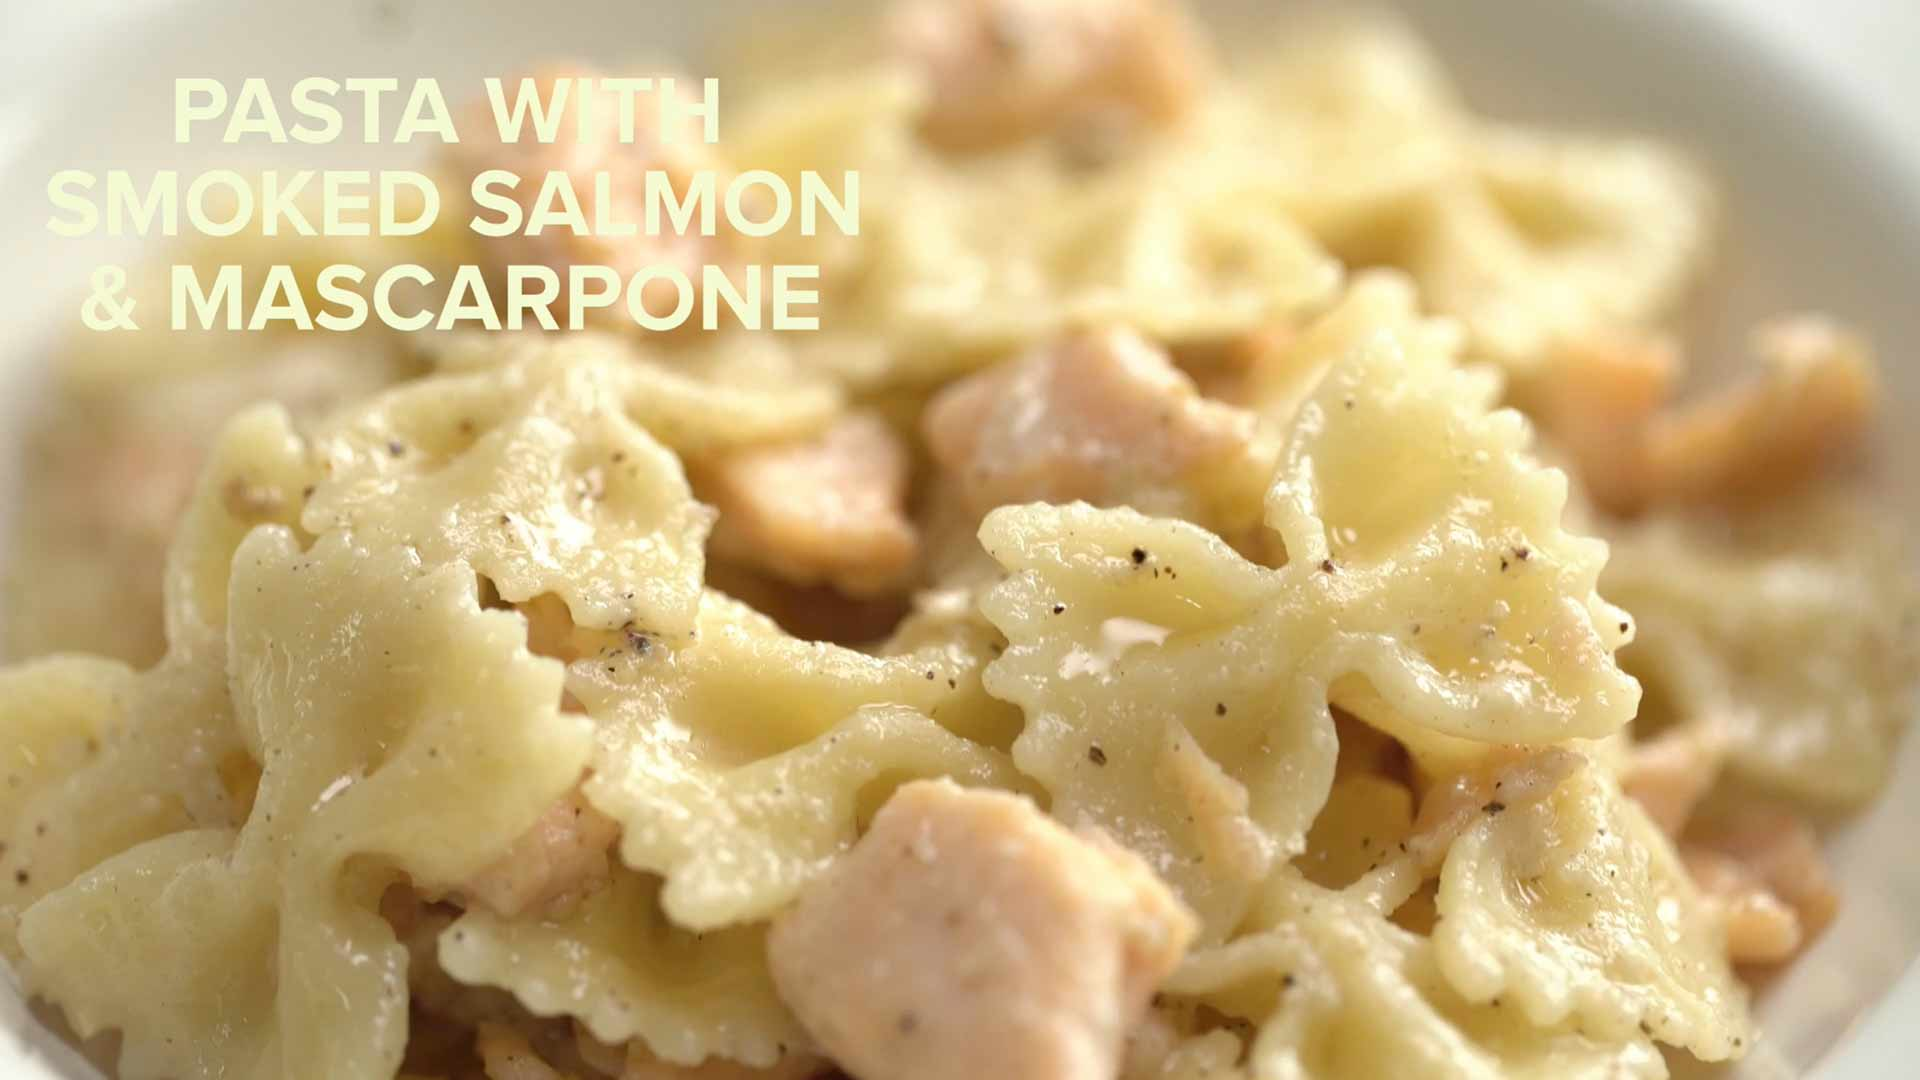 Creamy Pasta with Smoked Salmon and Mascarpone Recipe | Easy Gourmet Pasta in 15 Minutes